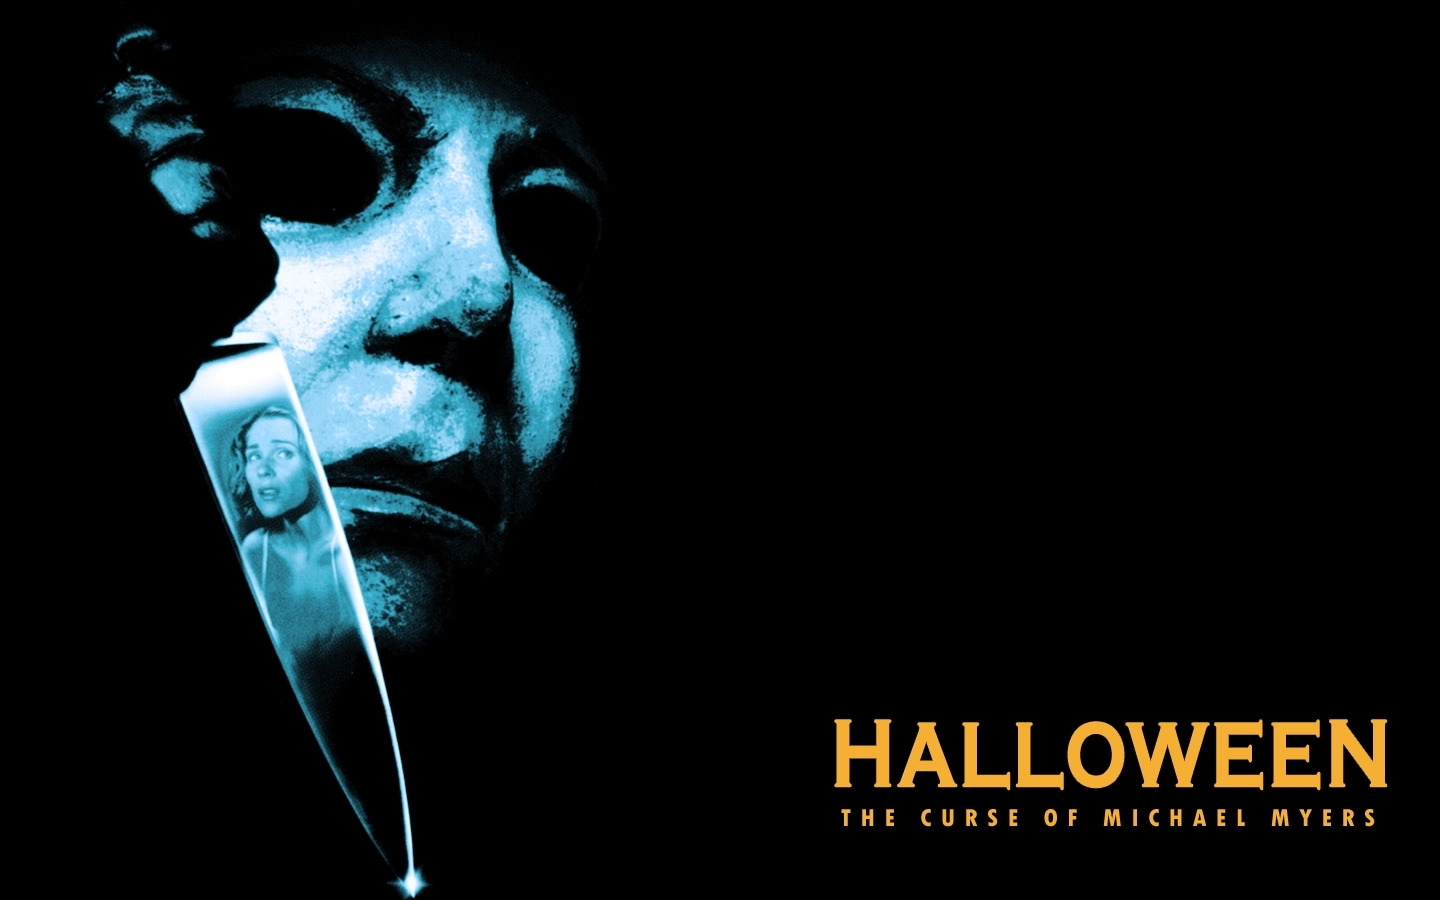 michael myers halloween wallpapers - wallpaper cave | epic car